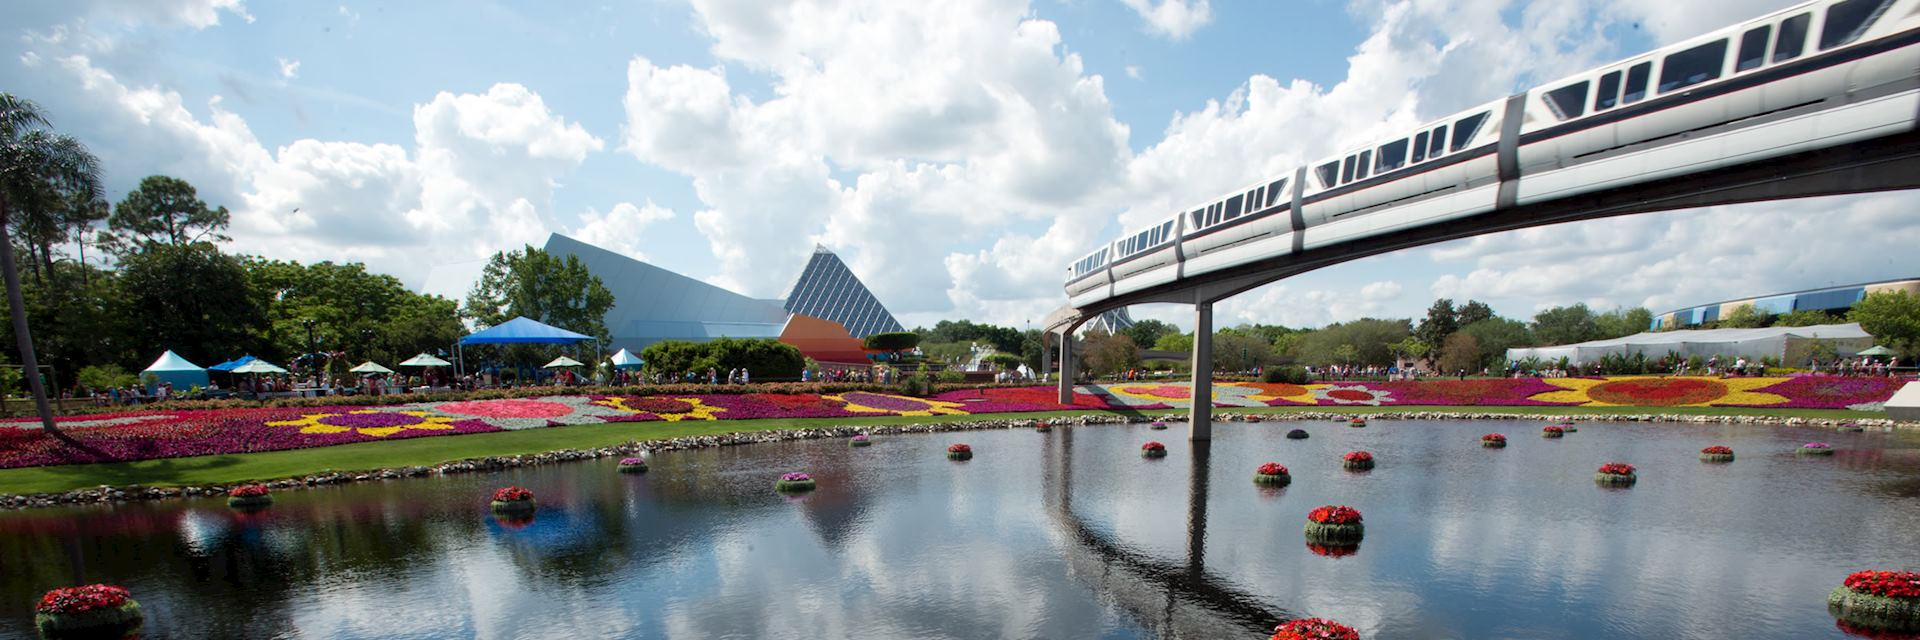 Monorail in Disney World, Orlando